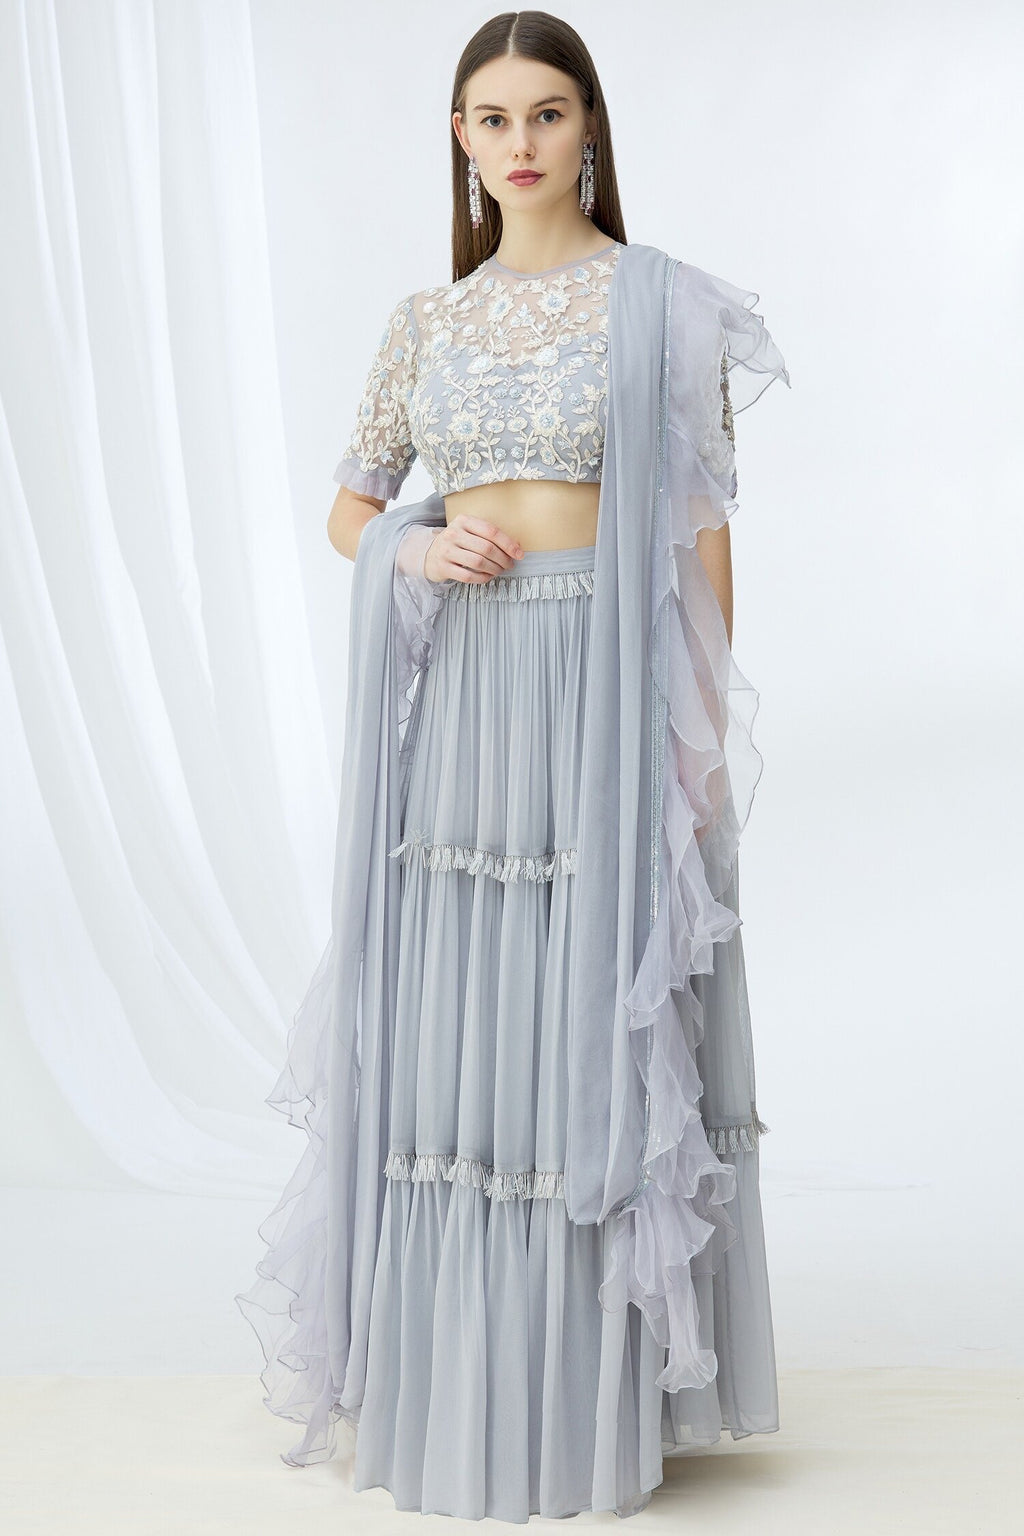 Powder Blue lehenga set Chhavvi Aggarwal